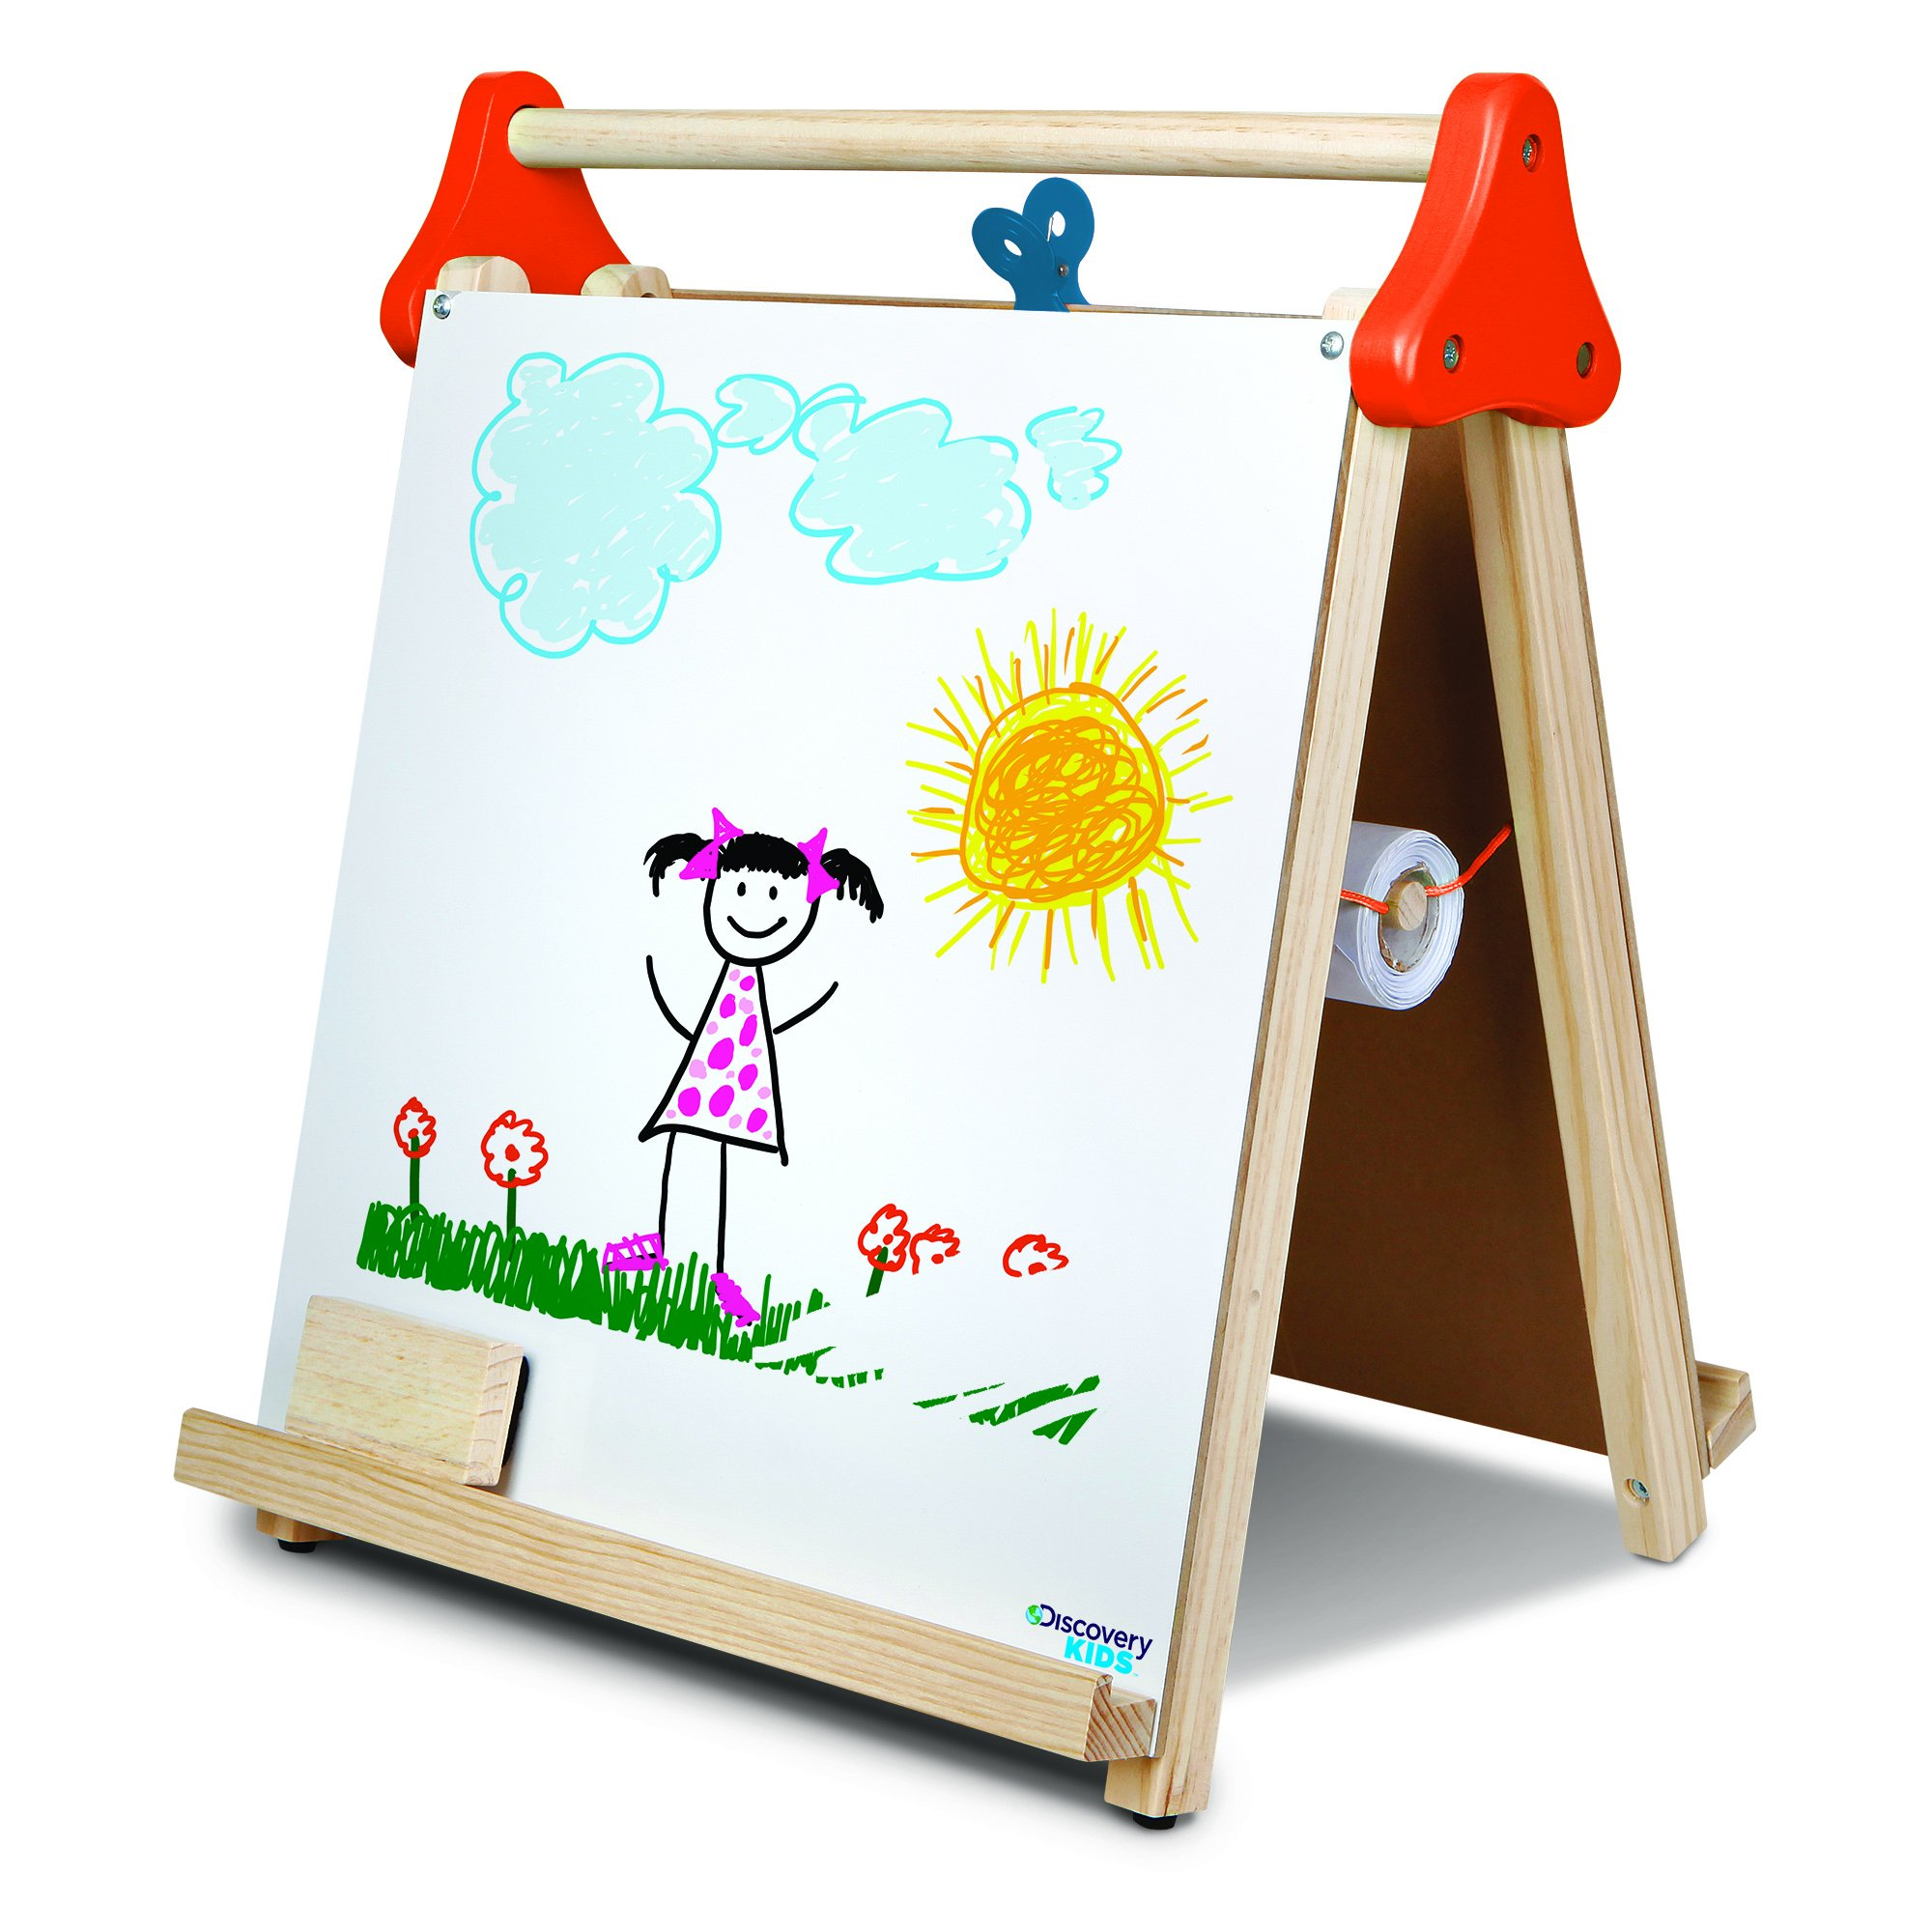 DISCOVERY KIDS 3-in-1 Tabletop Dry Erase Chalkboard Painting Art Easel, Includes Paper Roll and Oversized Clip, 17 x 15 Inch Wood Frame, Perfect for Children 3+ | Foldable/Portable for Countertop Play by Discovery Kids